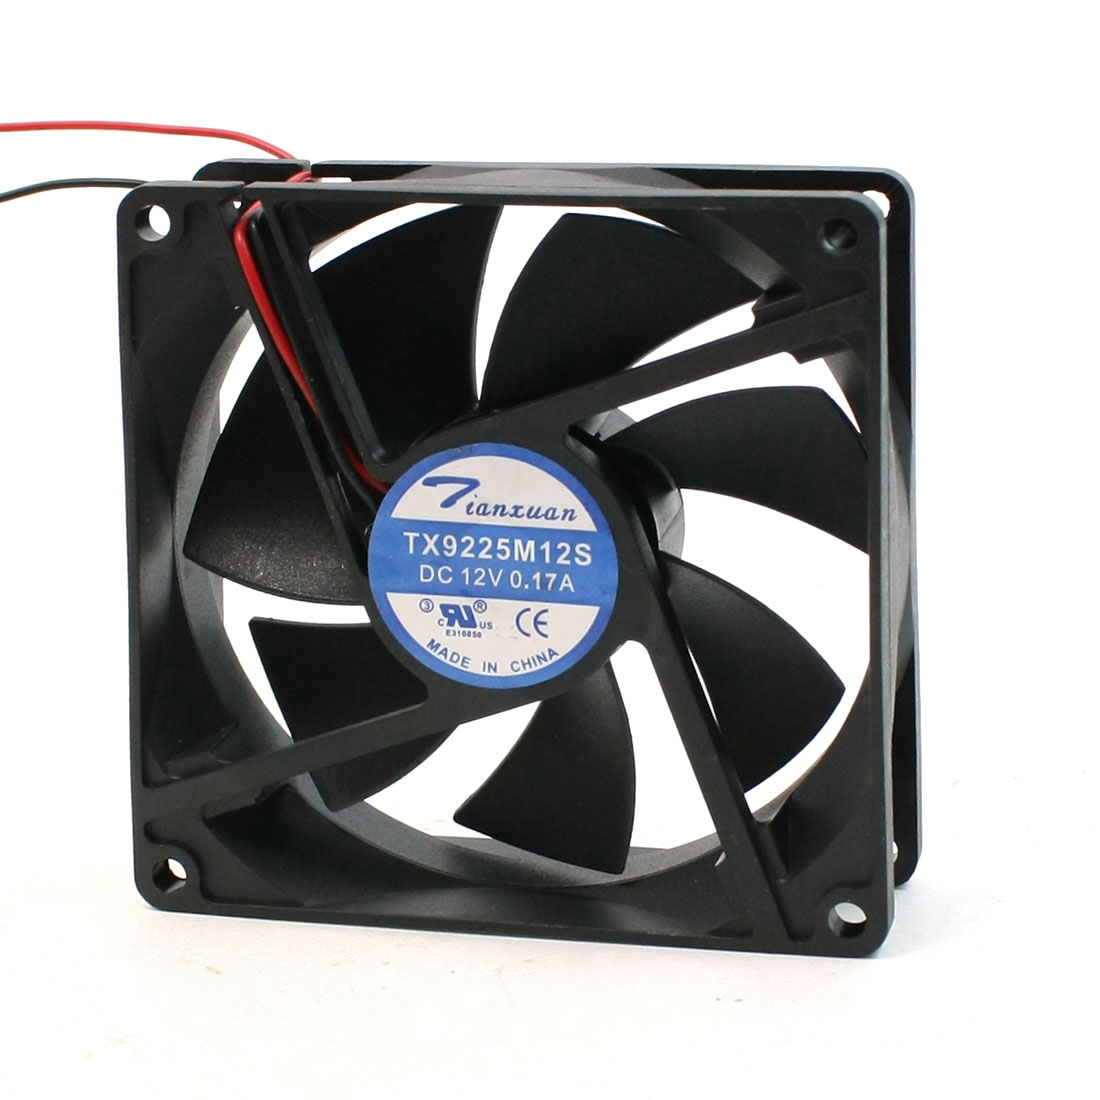 PC Computer Desktop 2 Wire Connector Cooling Fan DC 12V 0.17A